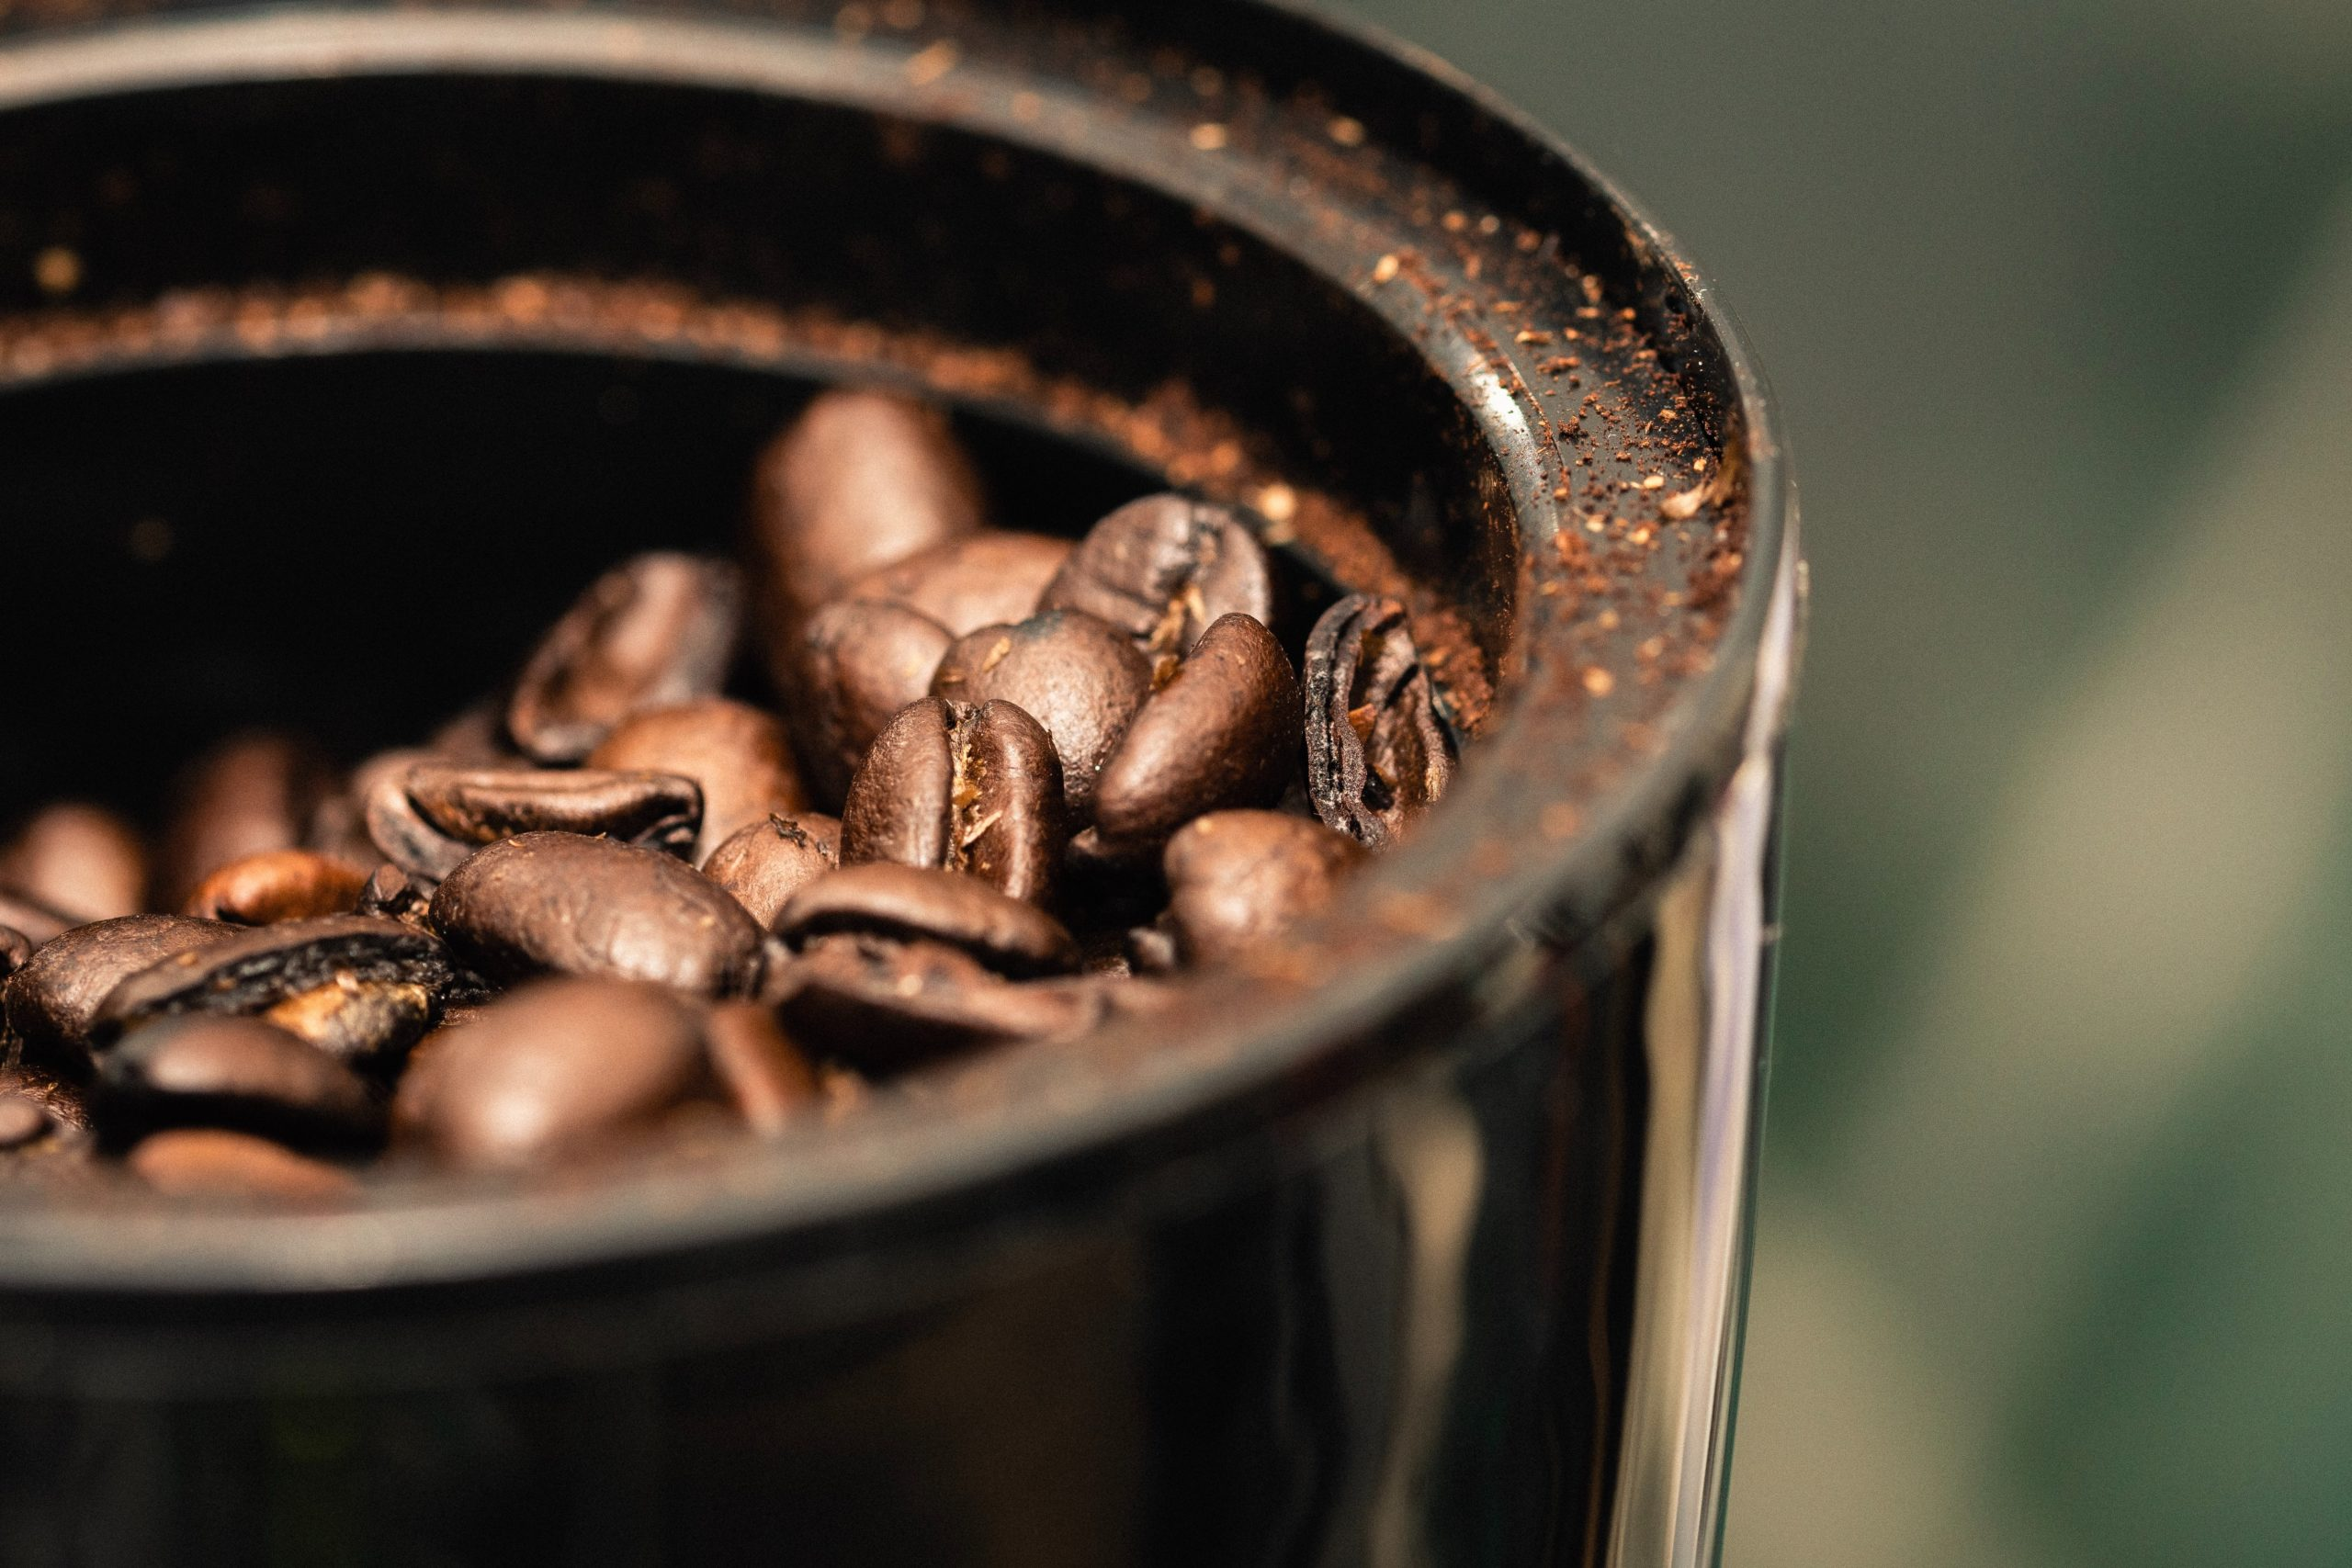 a close up shot of coffee beans in a coffee grinder